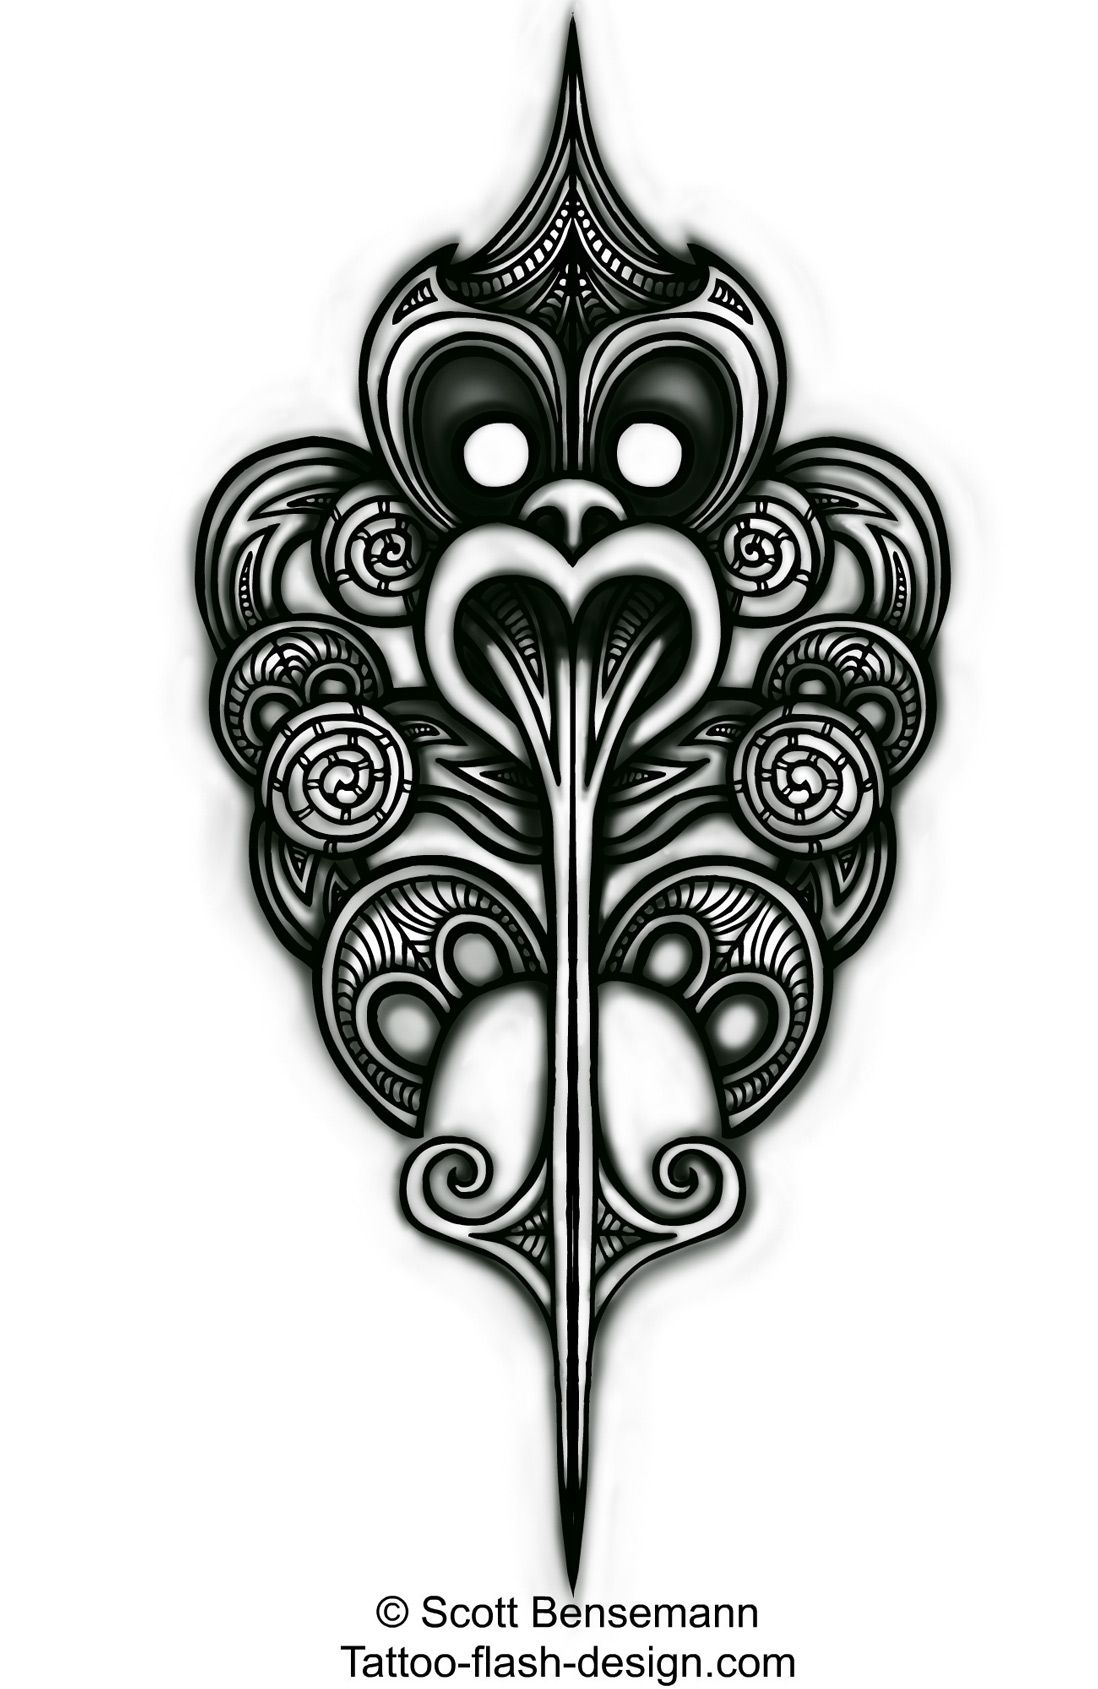 New Zealand Tattoo Maori: Yin Yang Tattoo Maori - Pesquisa Google